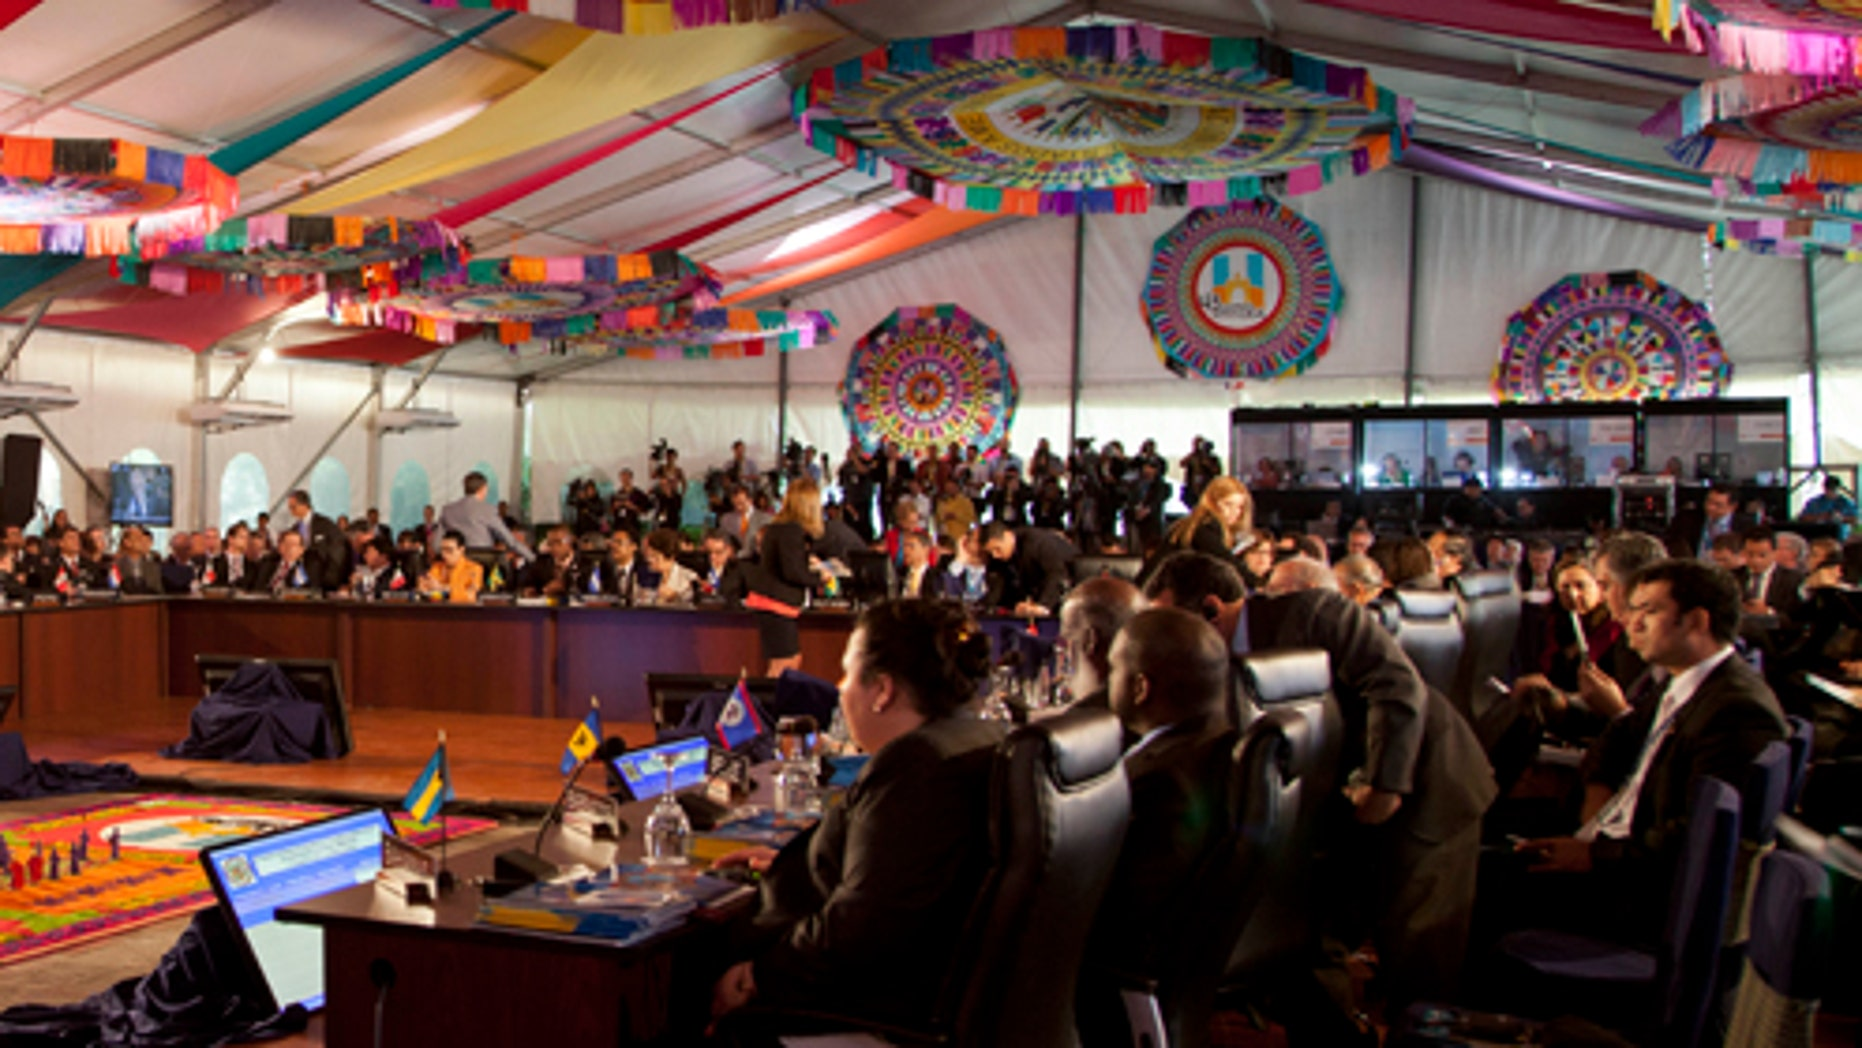 Delegates meet for the first session of the 43rd General Assembly of the Organization of American States, OAS, in Antigua Guatemala, Guatemala, Wednesday, June 5, 2013. Latin American countries frustrated by the United States' refusal to change its drug war strategy will push at the OAS conference that began Tuesday for the U.S. government to start discussing alternative approaches to a fight that has killed tens of thousands in a region beset by drug cartels. (AP Photo/Moises Castillo)